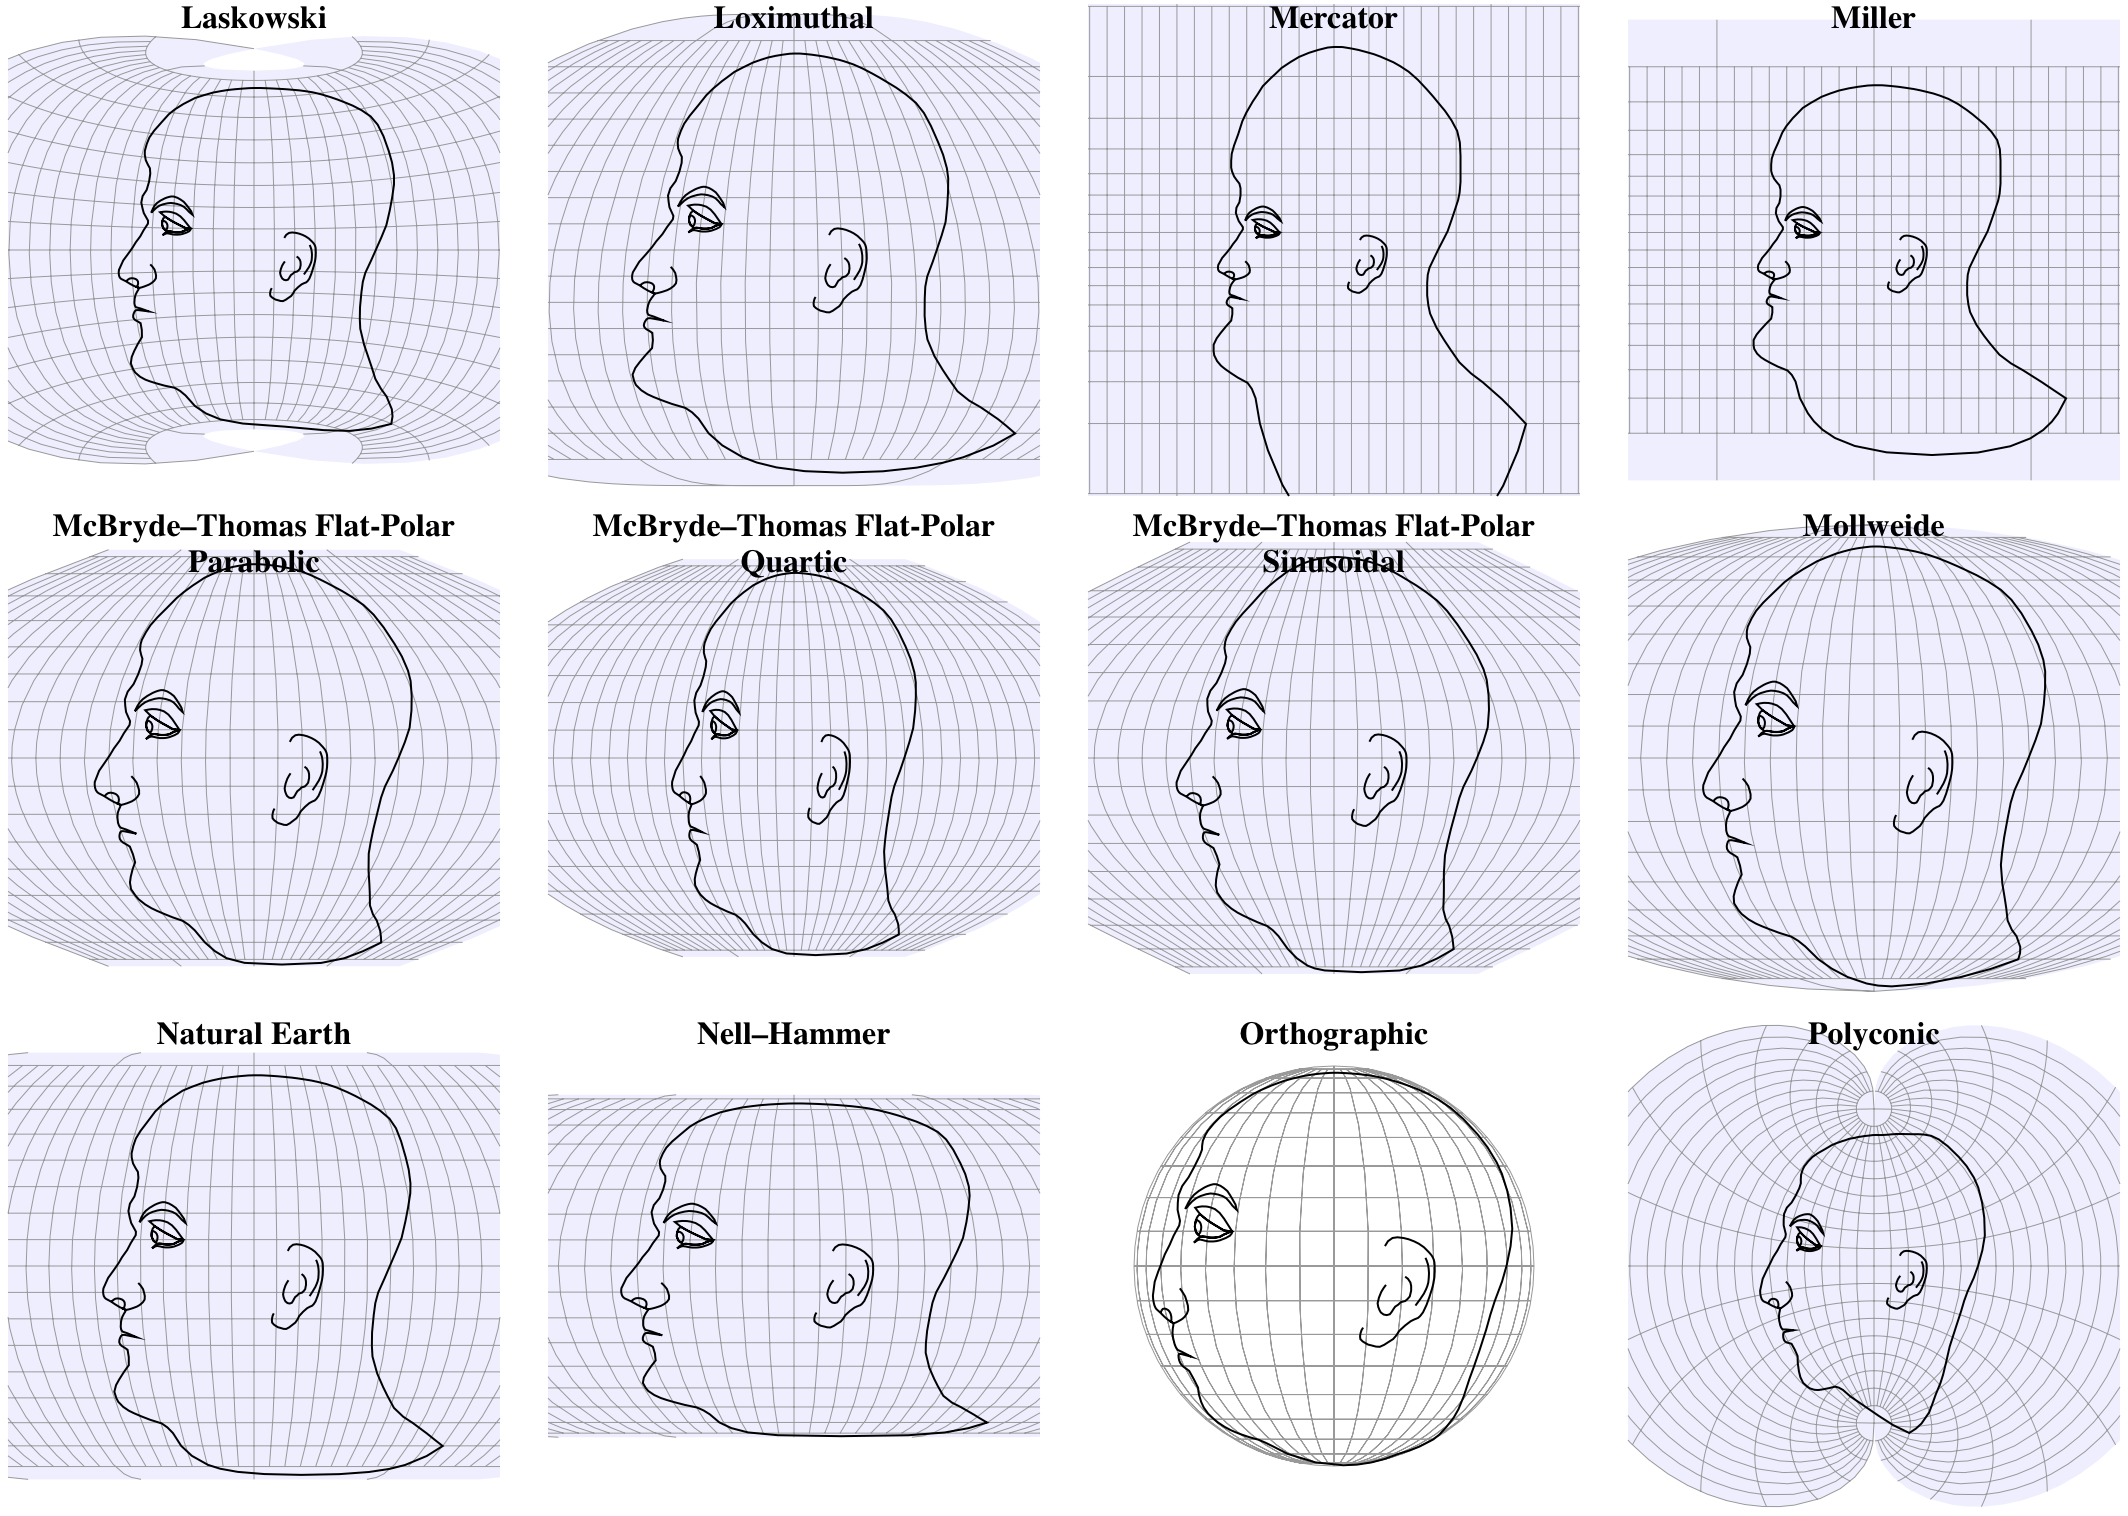 Xkcd map projections world map flat old treasure map interactive shows map projections with a face weve seen faces as b9135005970870bcd40f85f7babceec4 190066046757362083 xkcd map projections gumiabroncs Gallery